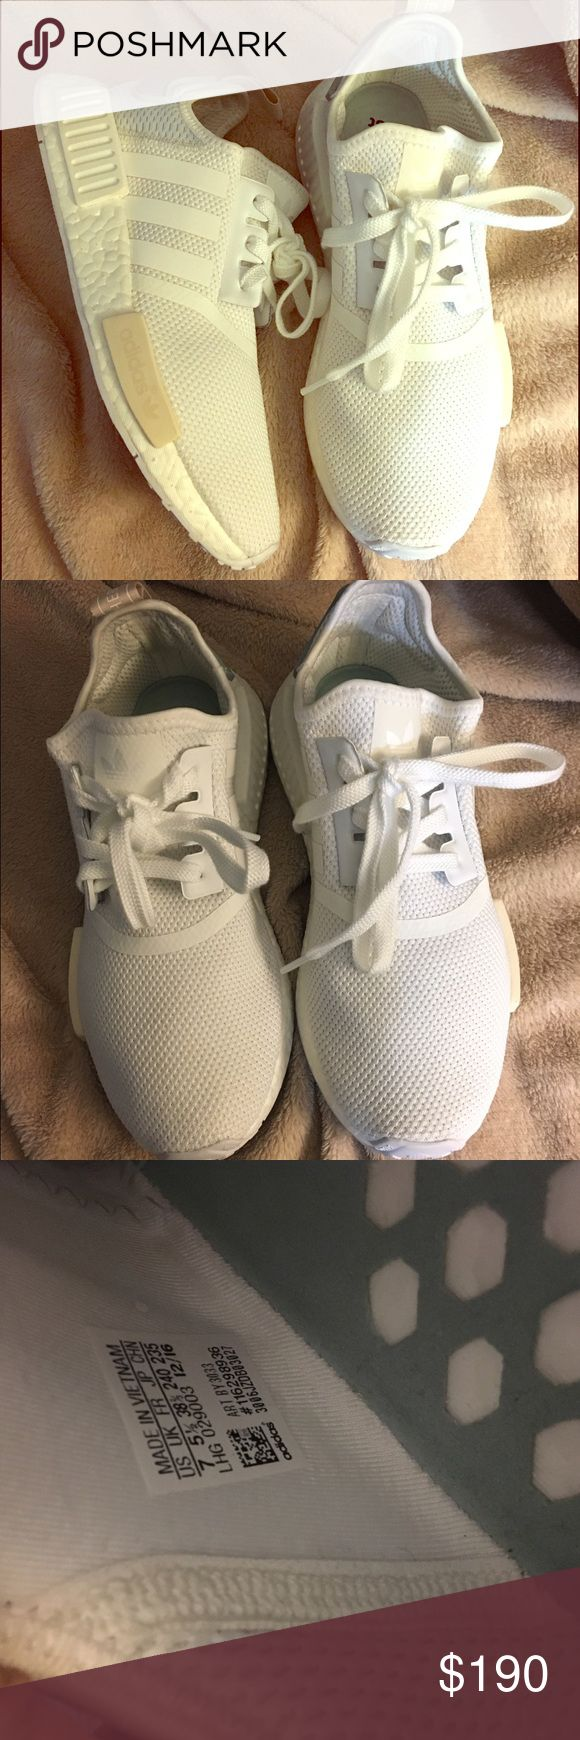 Adidas originals nmd size 7 Authentic adidas originals nmd in white/tactile green women's size 7. Only worn 1x. No stains only show wear on the bottoms. No low ball offers or trades 🙅🏻. Does not come w box. Casual style and technical running features collide in the modern and effortlessly casual adidas Originals NMD Runner. Three upper combinations include stretchy jersey and canvas with a reflective, open mesh heel, neoprene and mesh, or suede and peached jersey. Adidas Shoes Athletic…